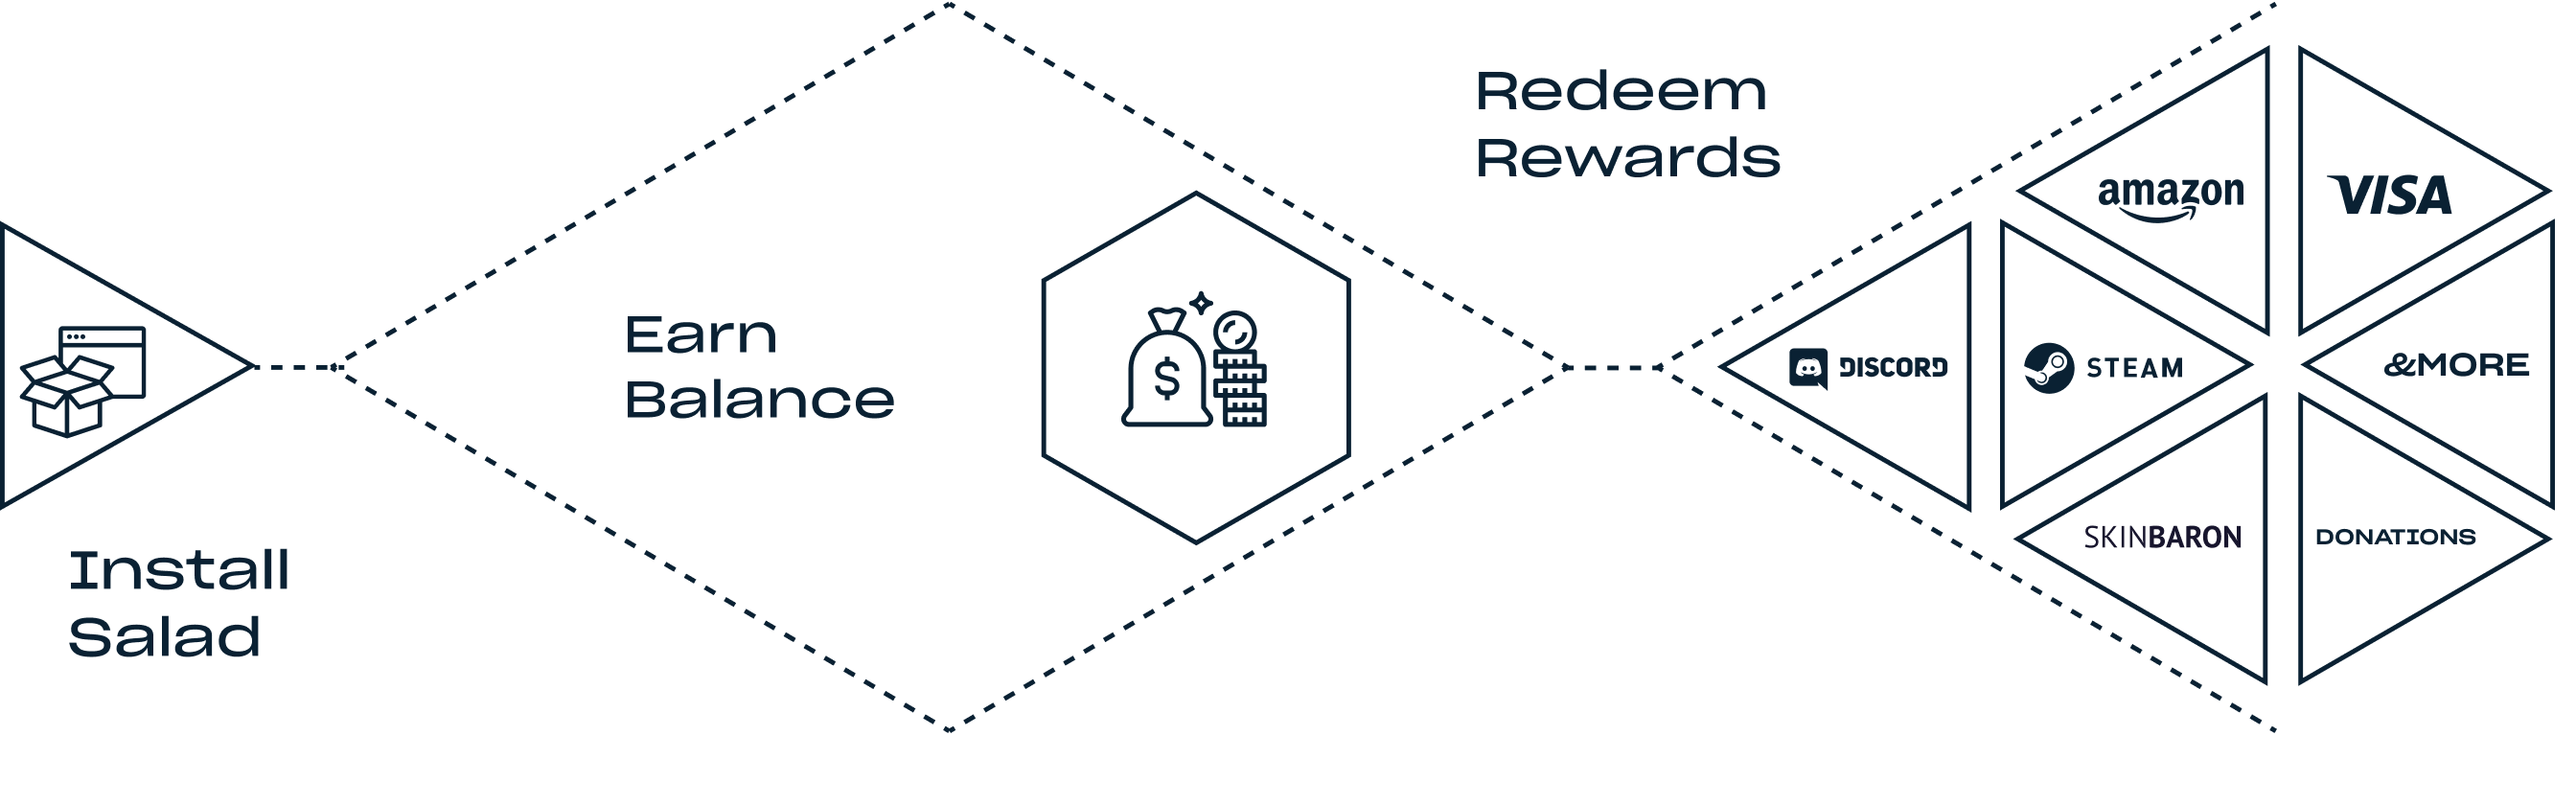 1.Install Salad; 2.Mine Crypto or Complete Offers; 3.Earn Balance; 4.Redeem Rewards